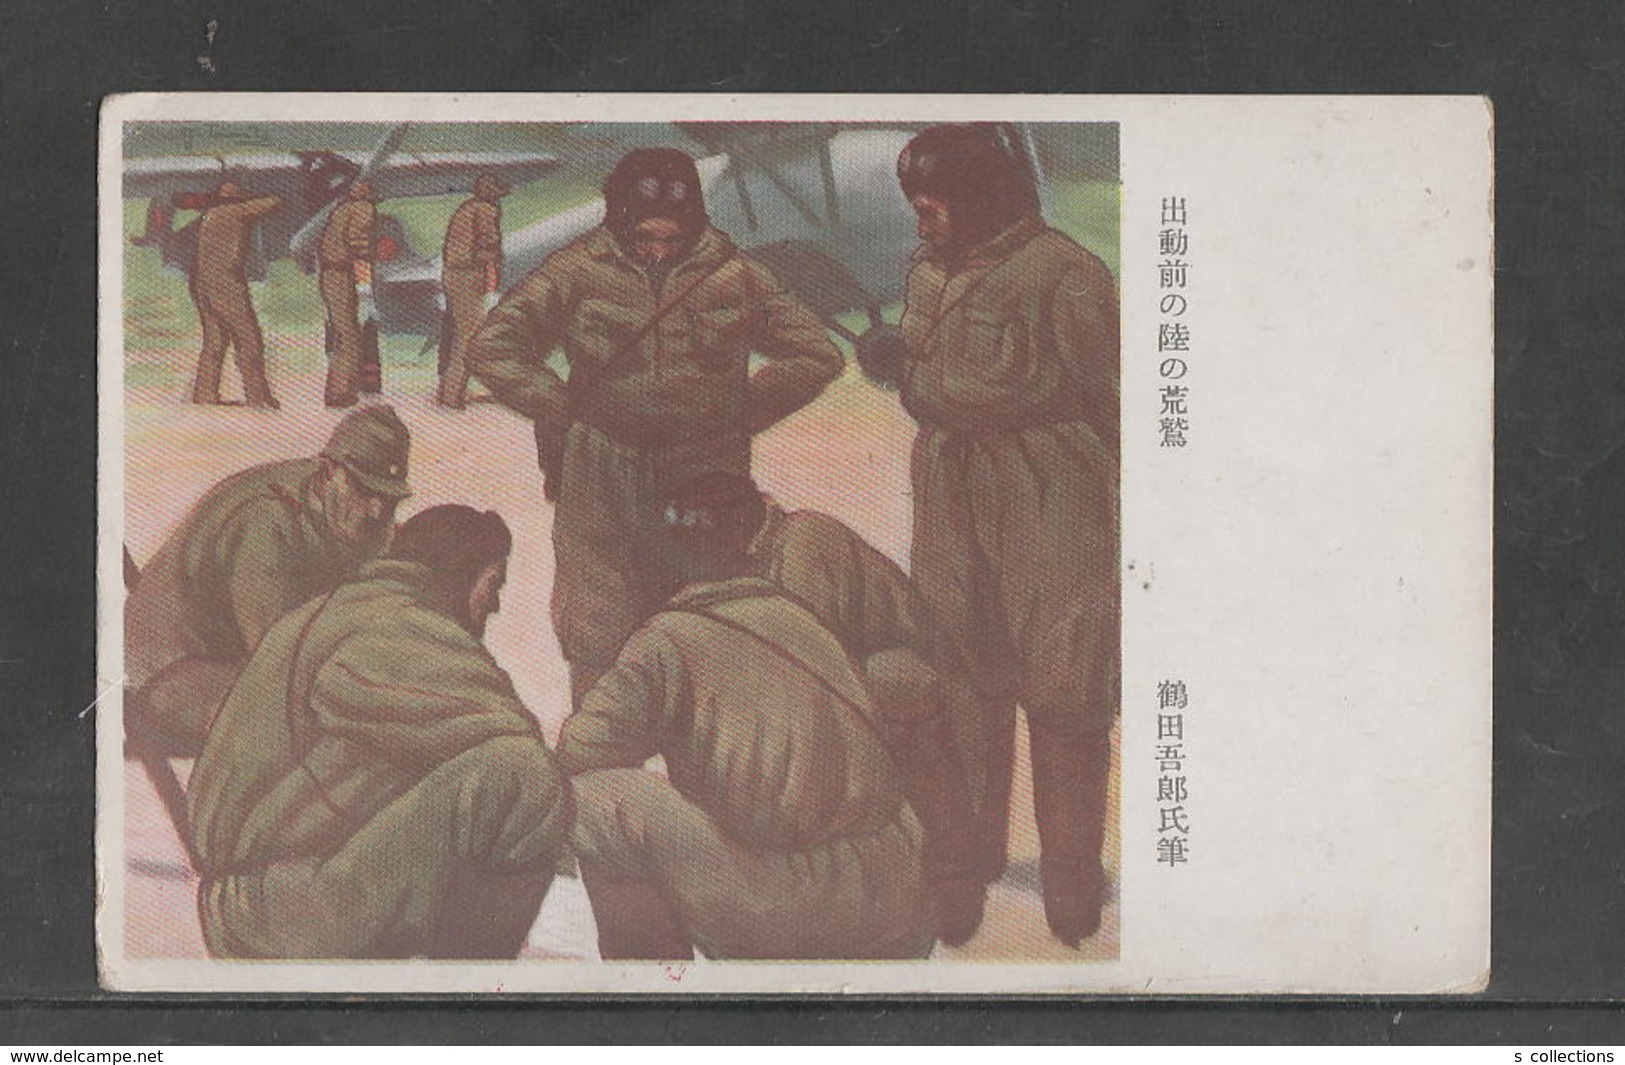 JAPAN WWII Military Japanese Soldier Pilot Picture Postcard CENTRAL CHINA HARA 7932th Force CHINE To JAPON GIAPPONE - 1943-45 Shanghai & Nanjing